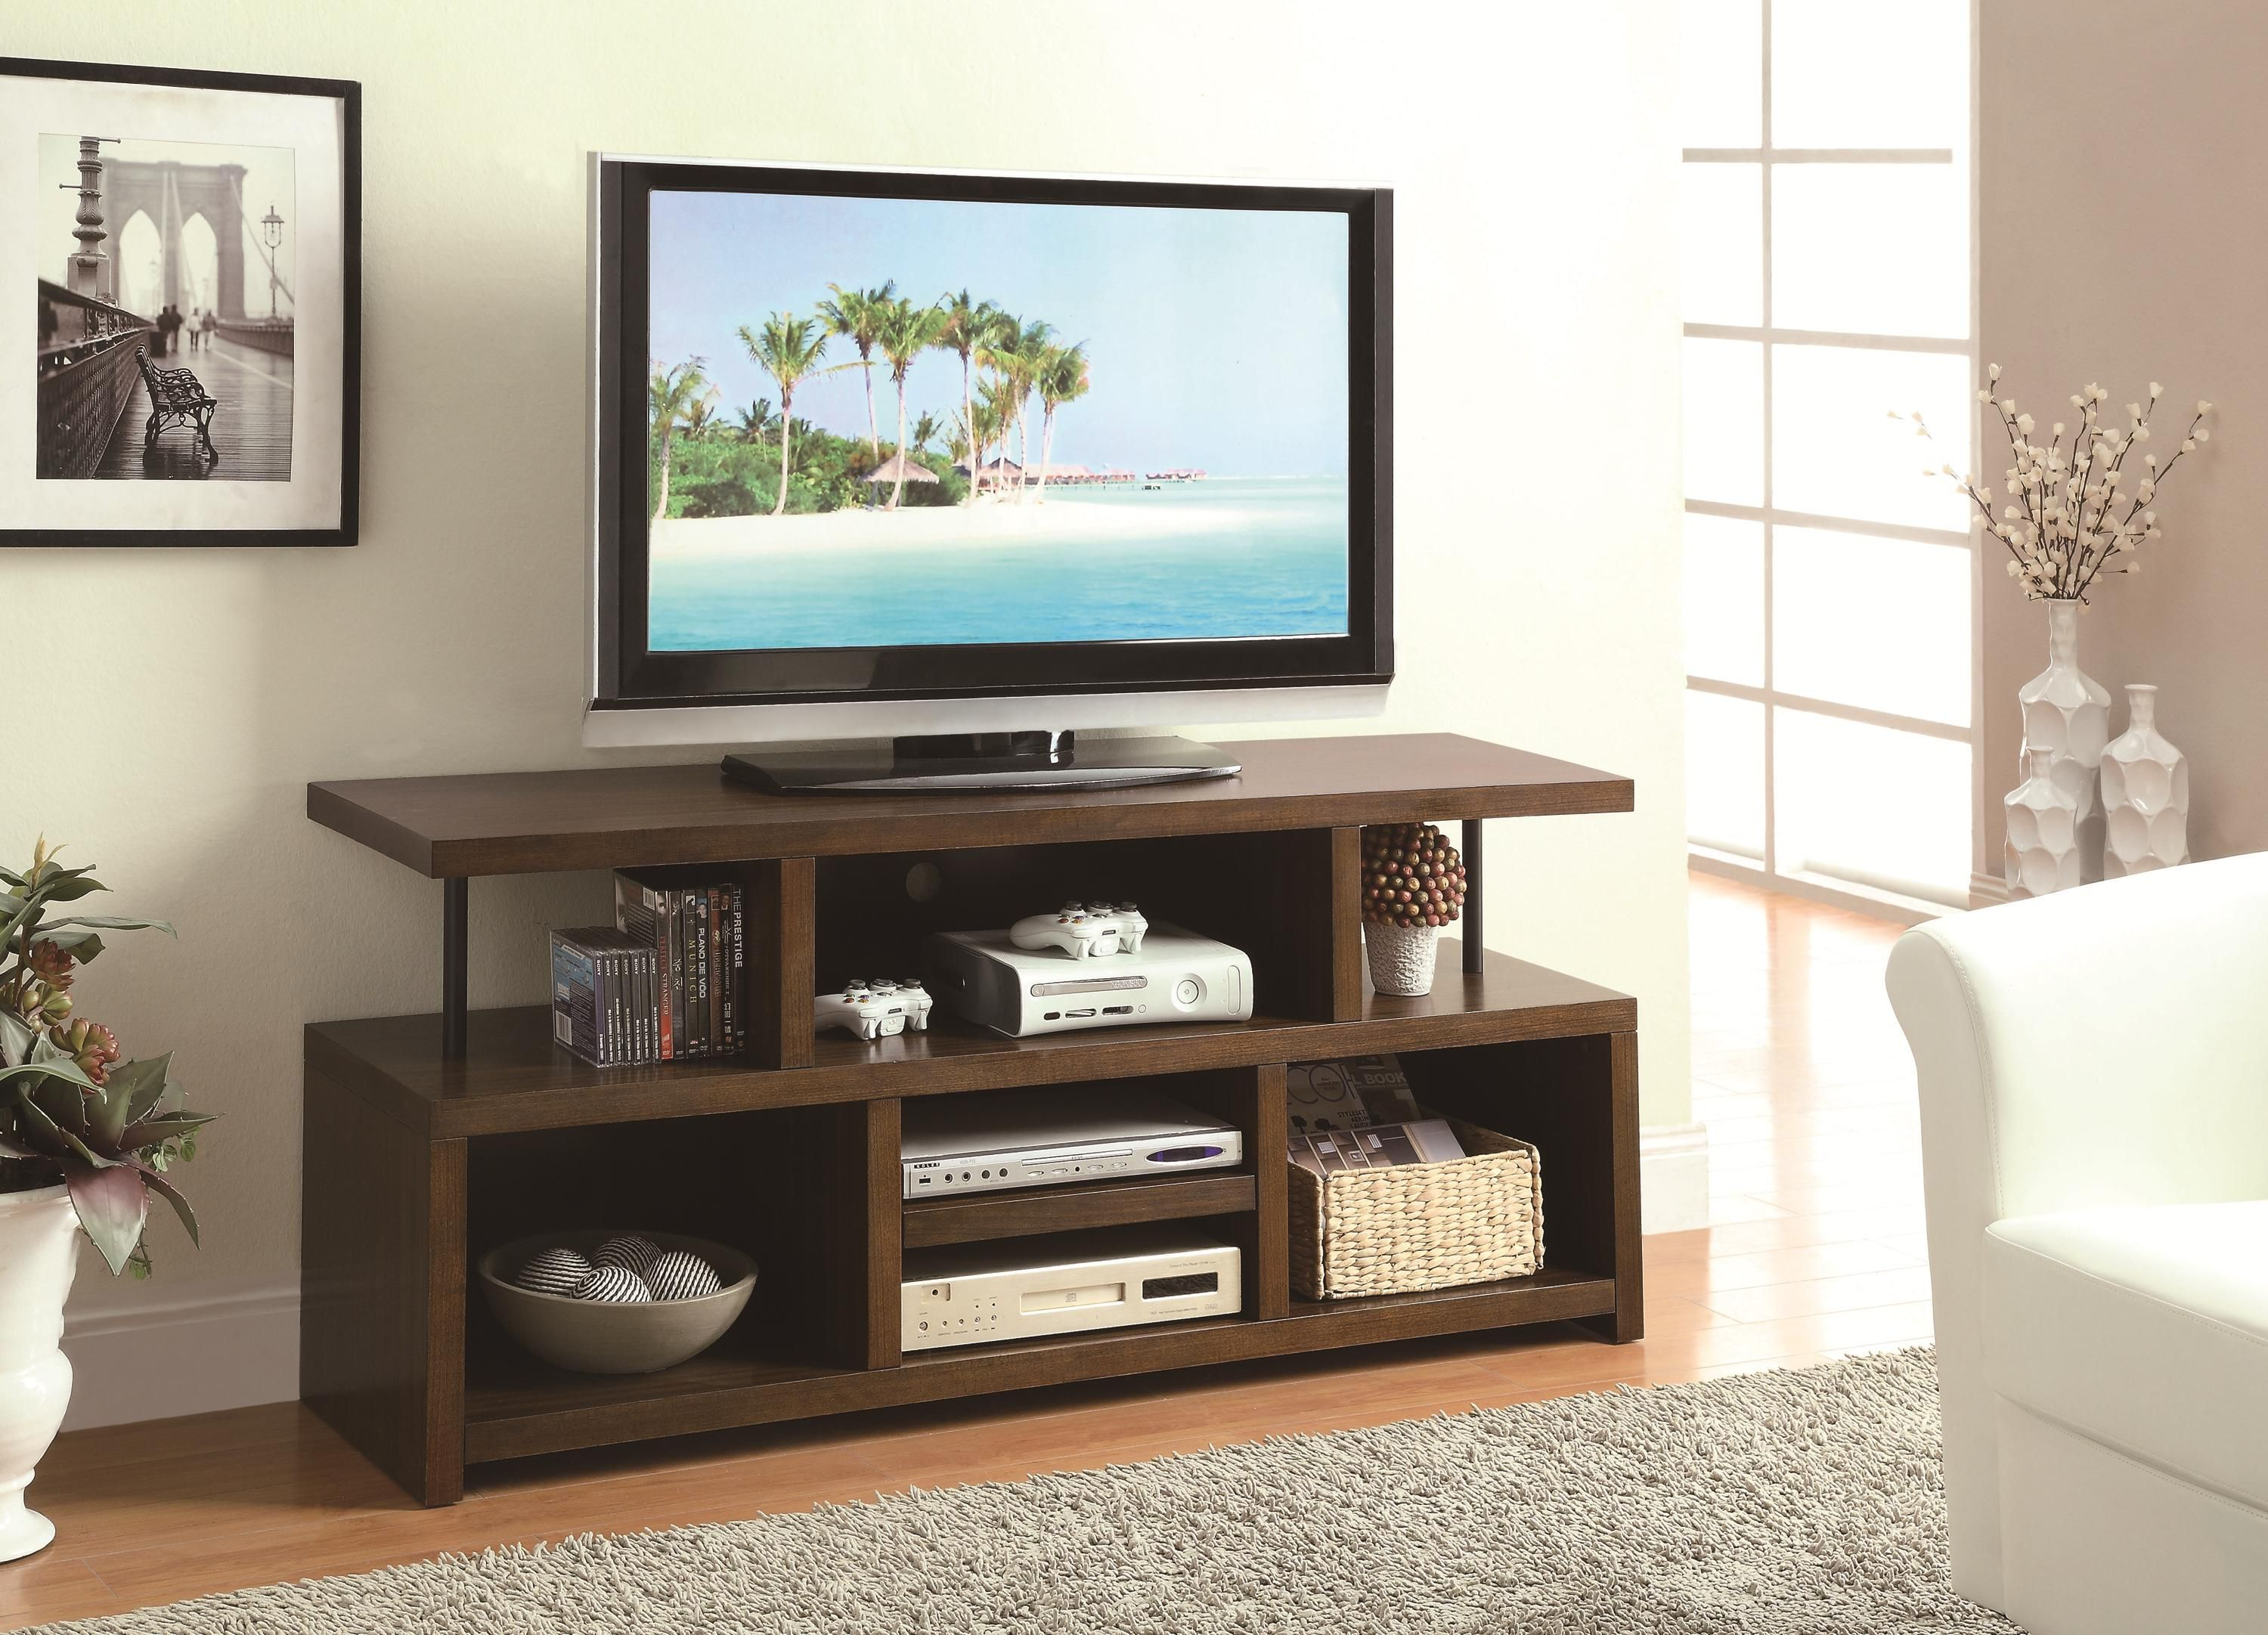 Coaster Tv Stands Casual Tv Console With Open Storage Coaster Fine Furniture Living Room Console Entertainment Center Furniture Home Tv Stand